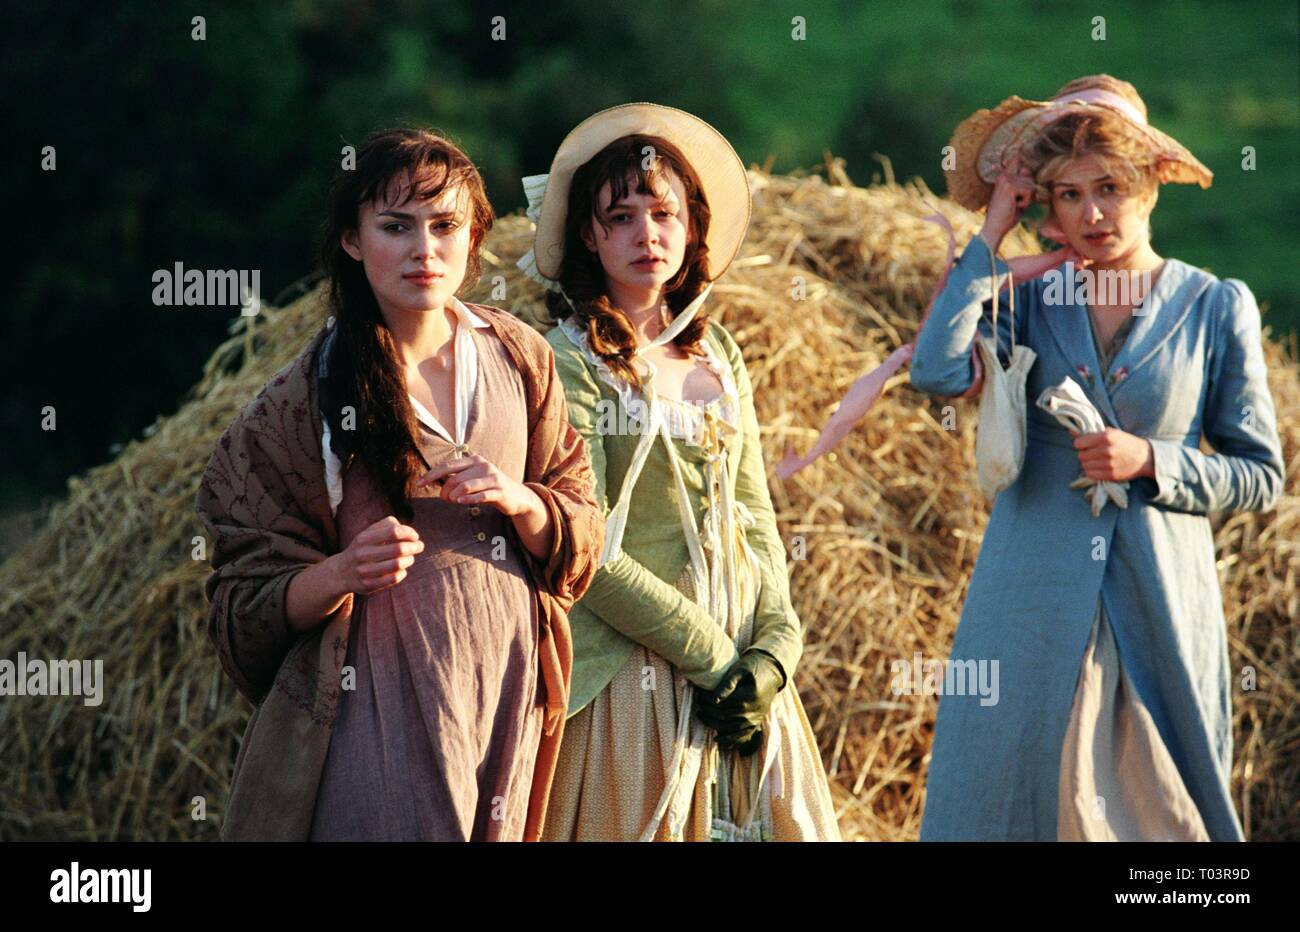 KEIRA KNIGHTLEY, CAREY MULLIGAN, ROSAMUND PIKE, PRIDE and PREJUDICE, 2005 - Stock Image